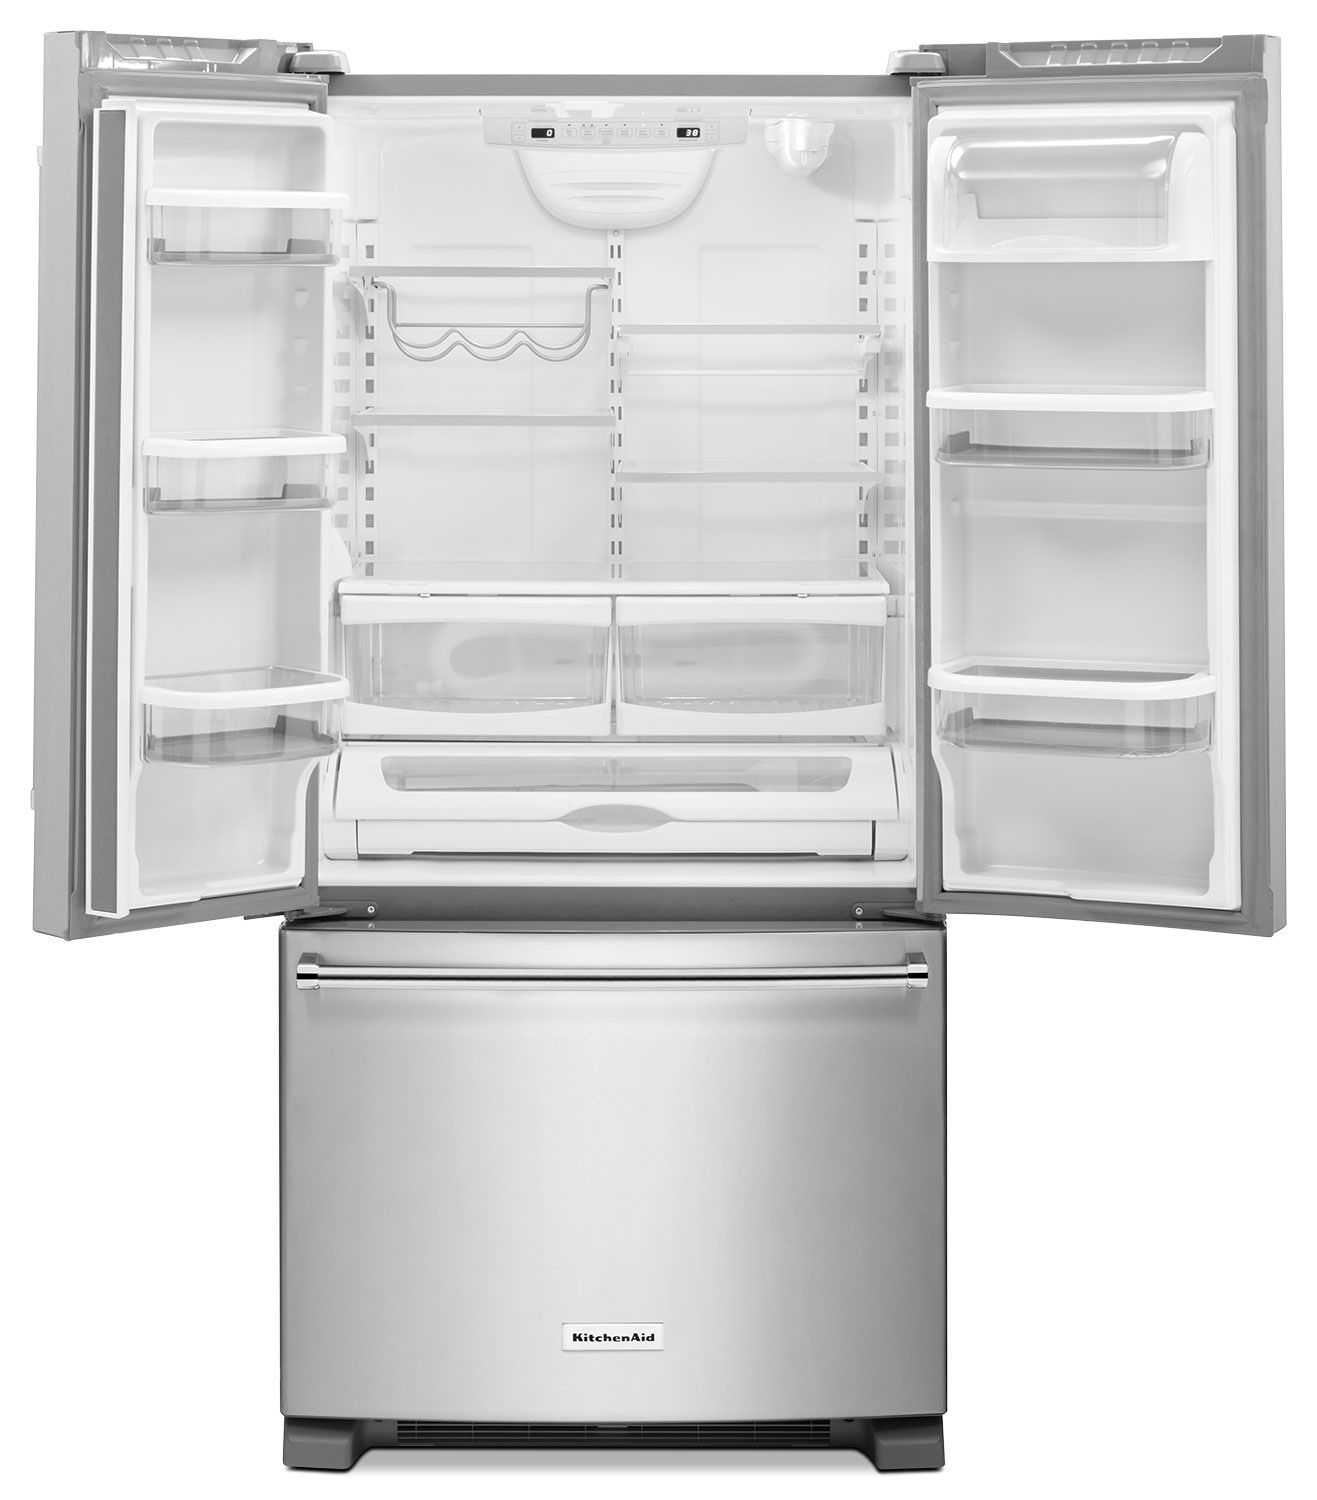 KitchenAid Stainless Steel French Door Refrigerator 22 1 Cu Ft